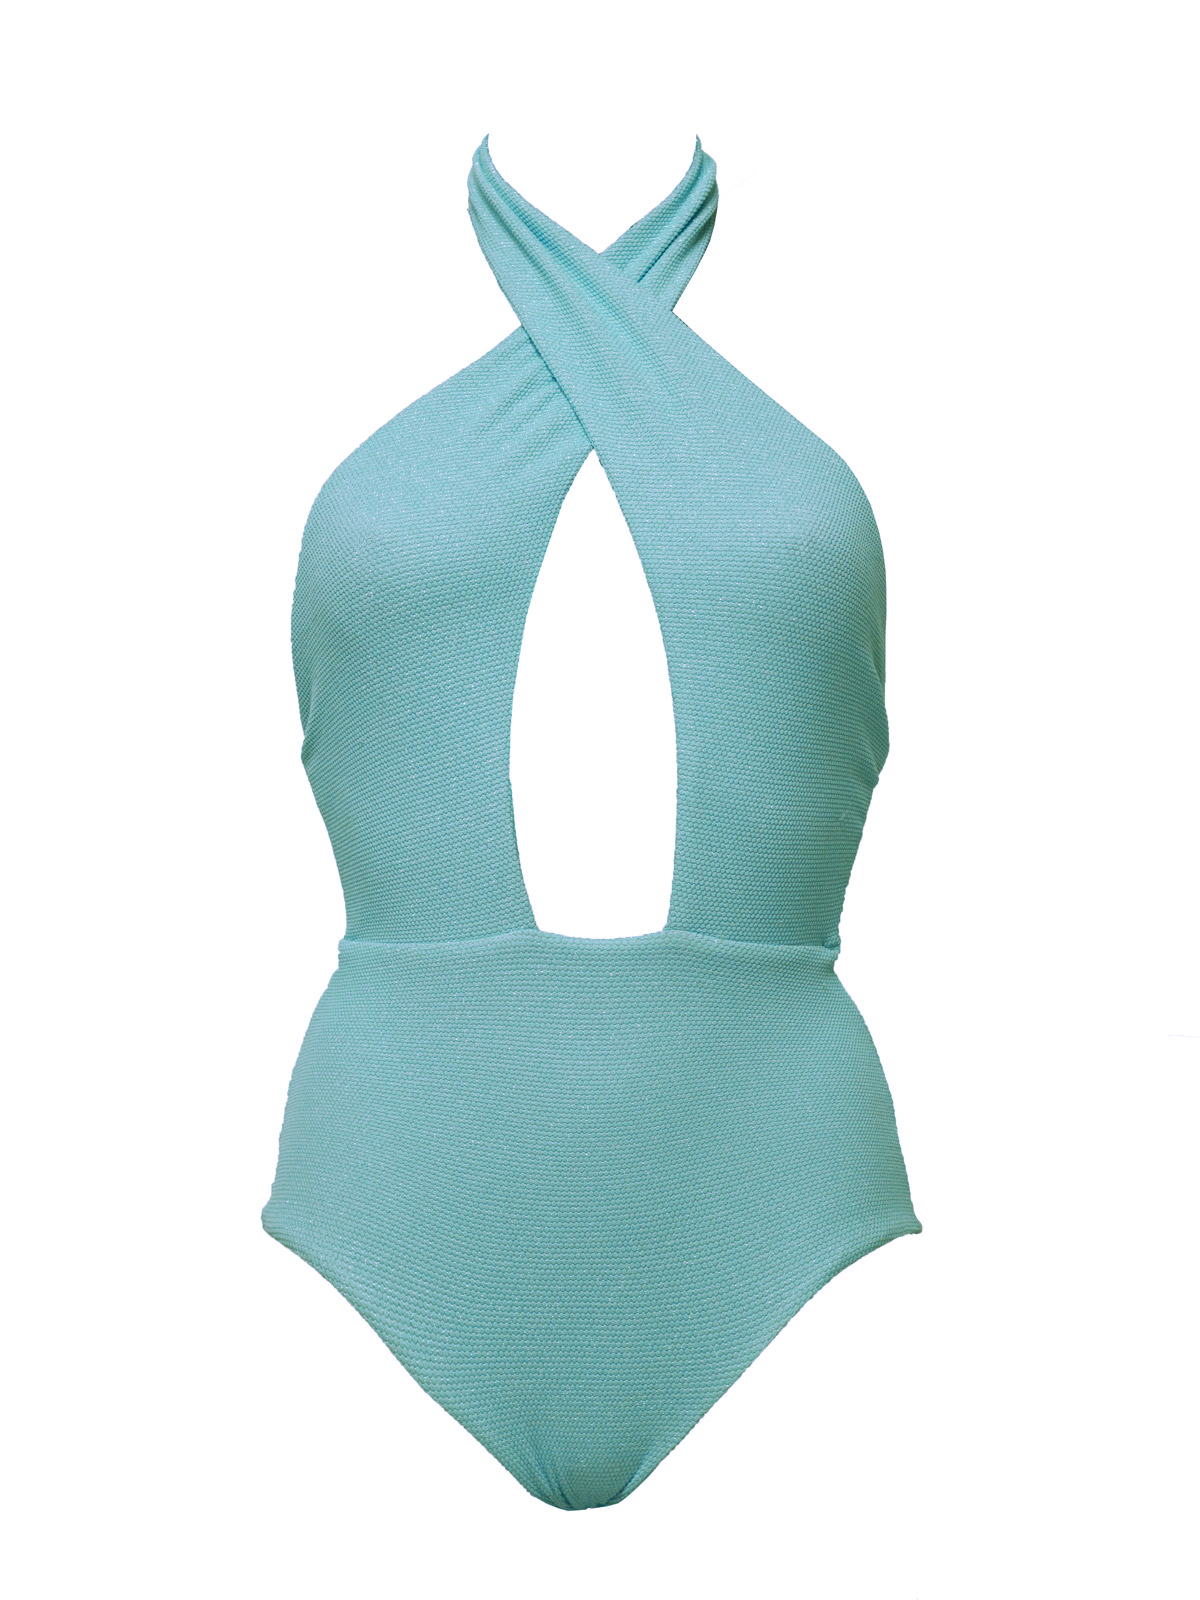 J_maillot_seawater_front1